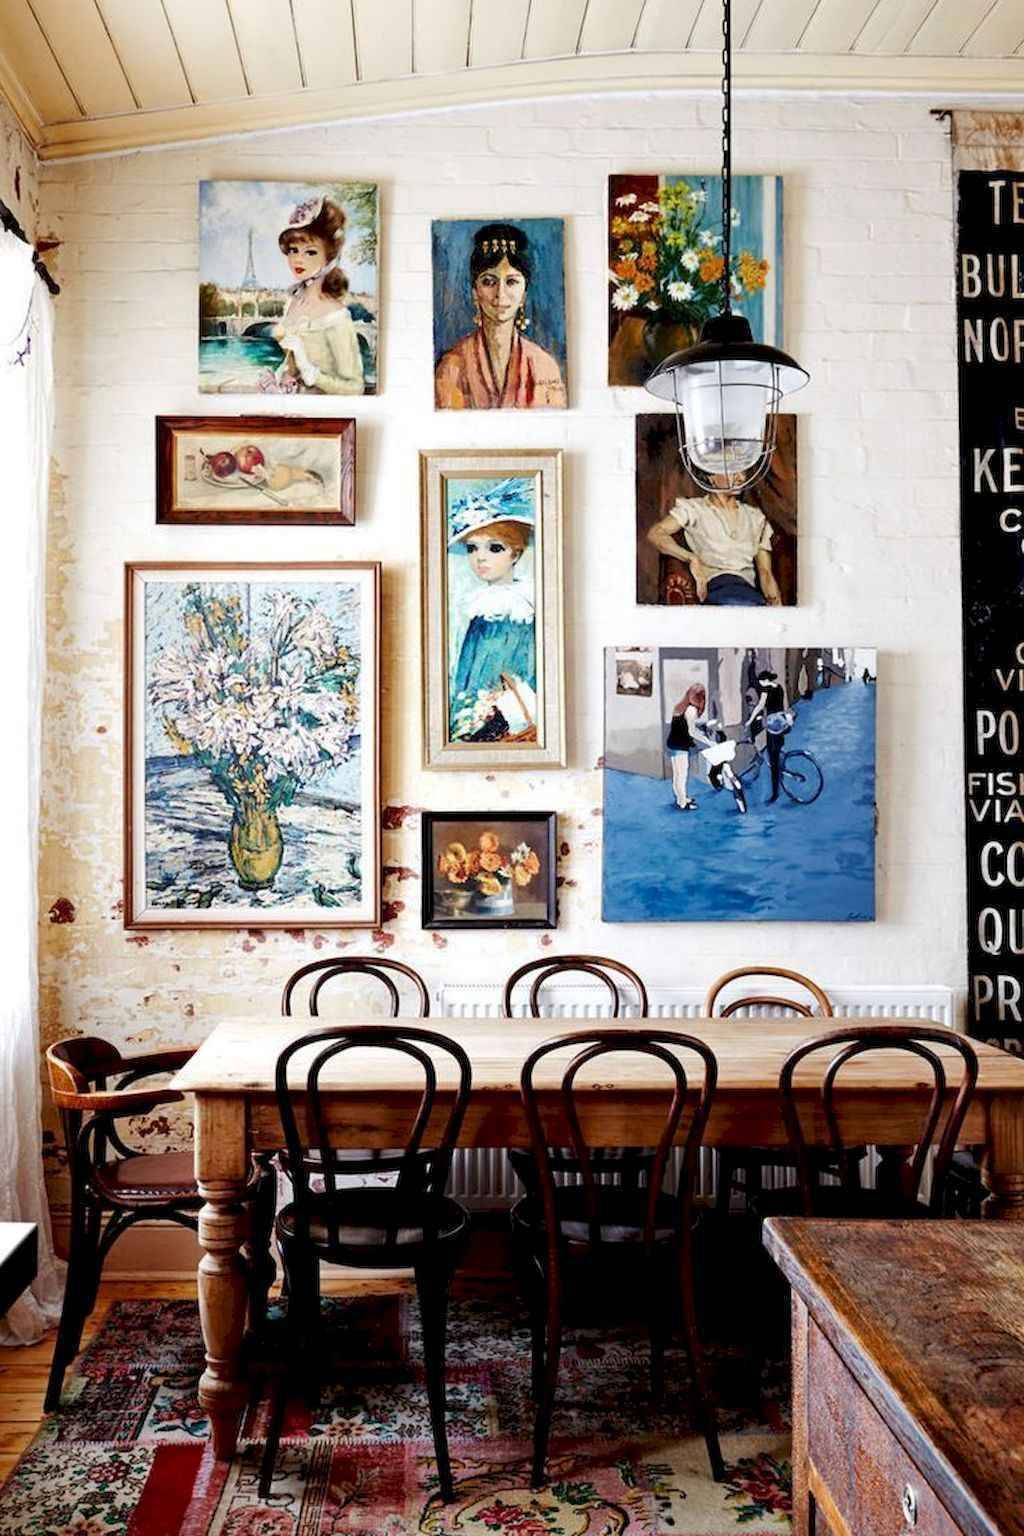 60 Amazing Eclectic Style Living Room Design Ideas 41 Eclectic Dining Room Vintage Interior Decor Vintage Dining Room #vintage #eclectic #living #room